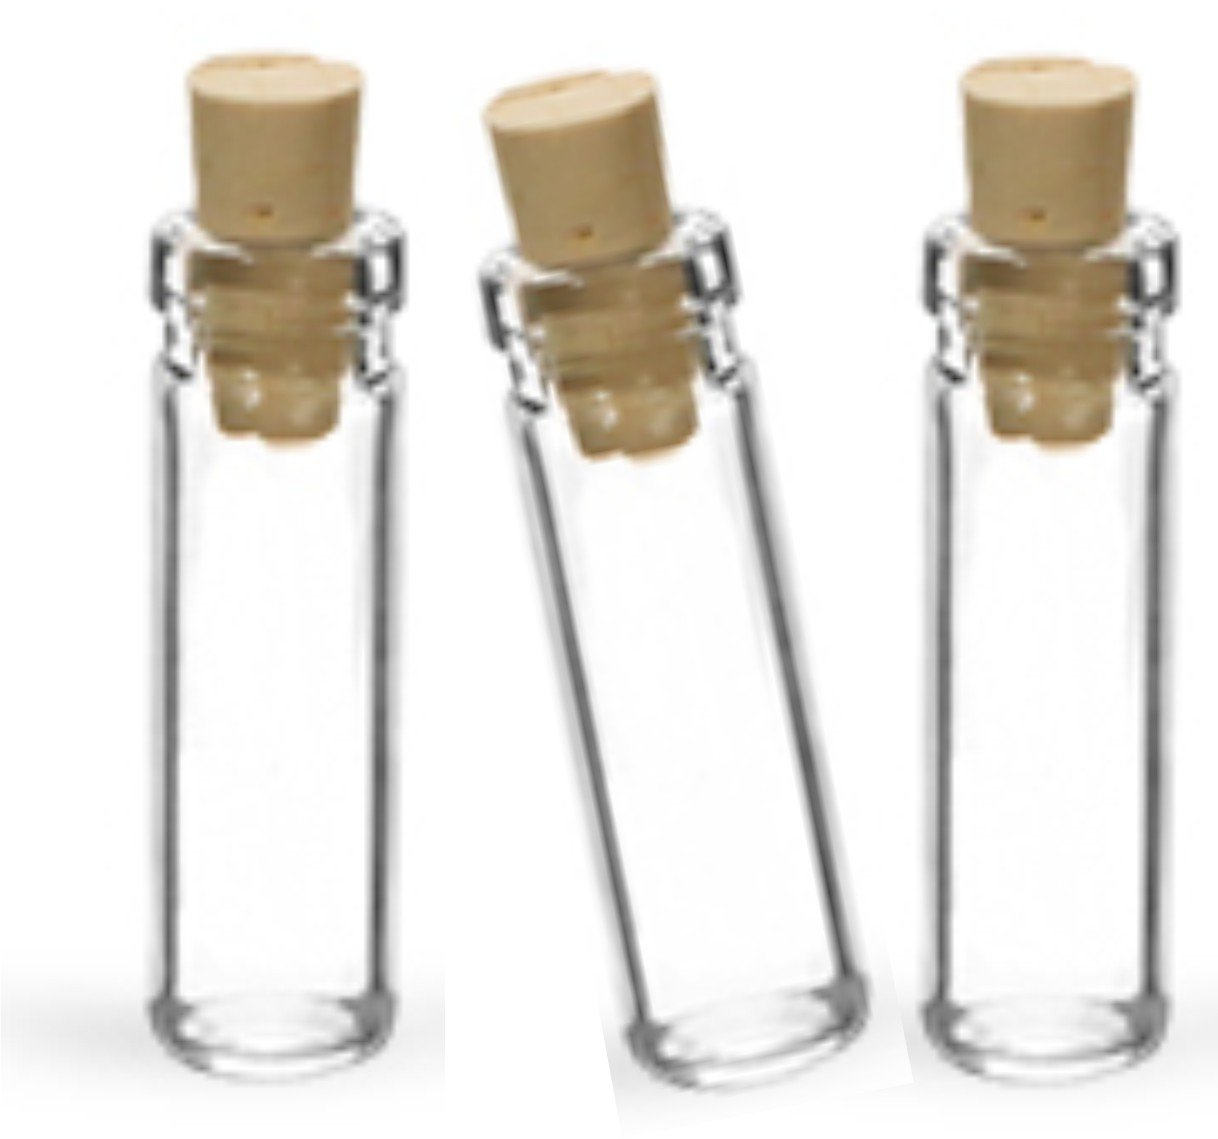 MagnaKoys 1/4 Dram 0.31 oz Clear Glass Lip Vials w/Cork Stoppers for Crafts Science Lab Oils Geocaching (pack of 7)